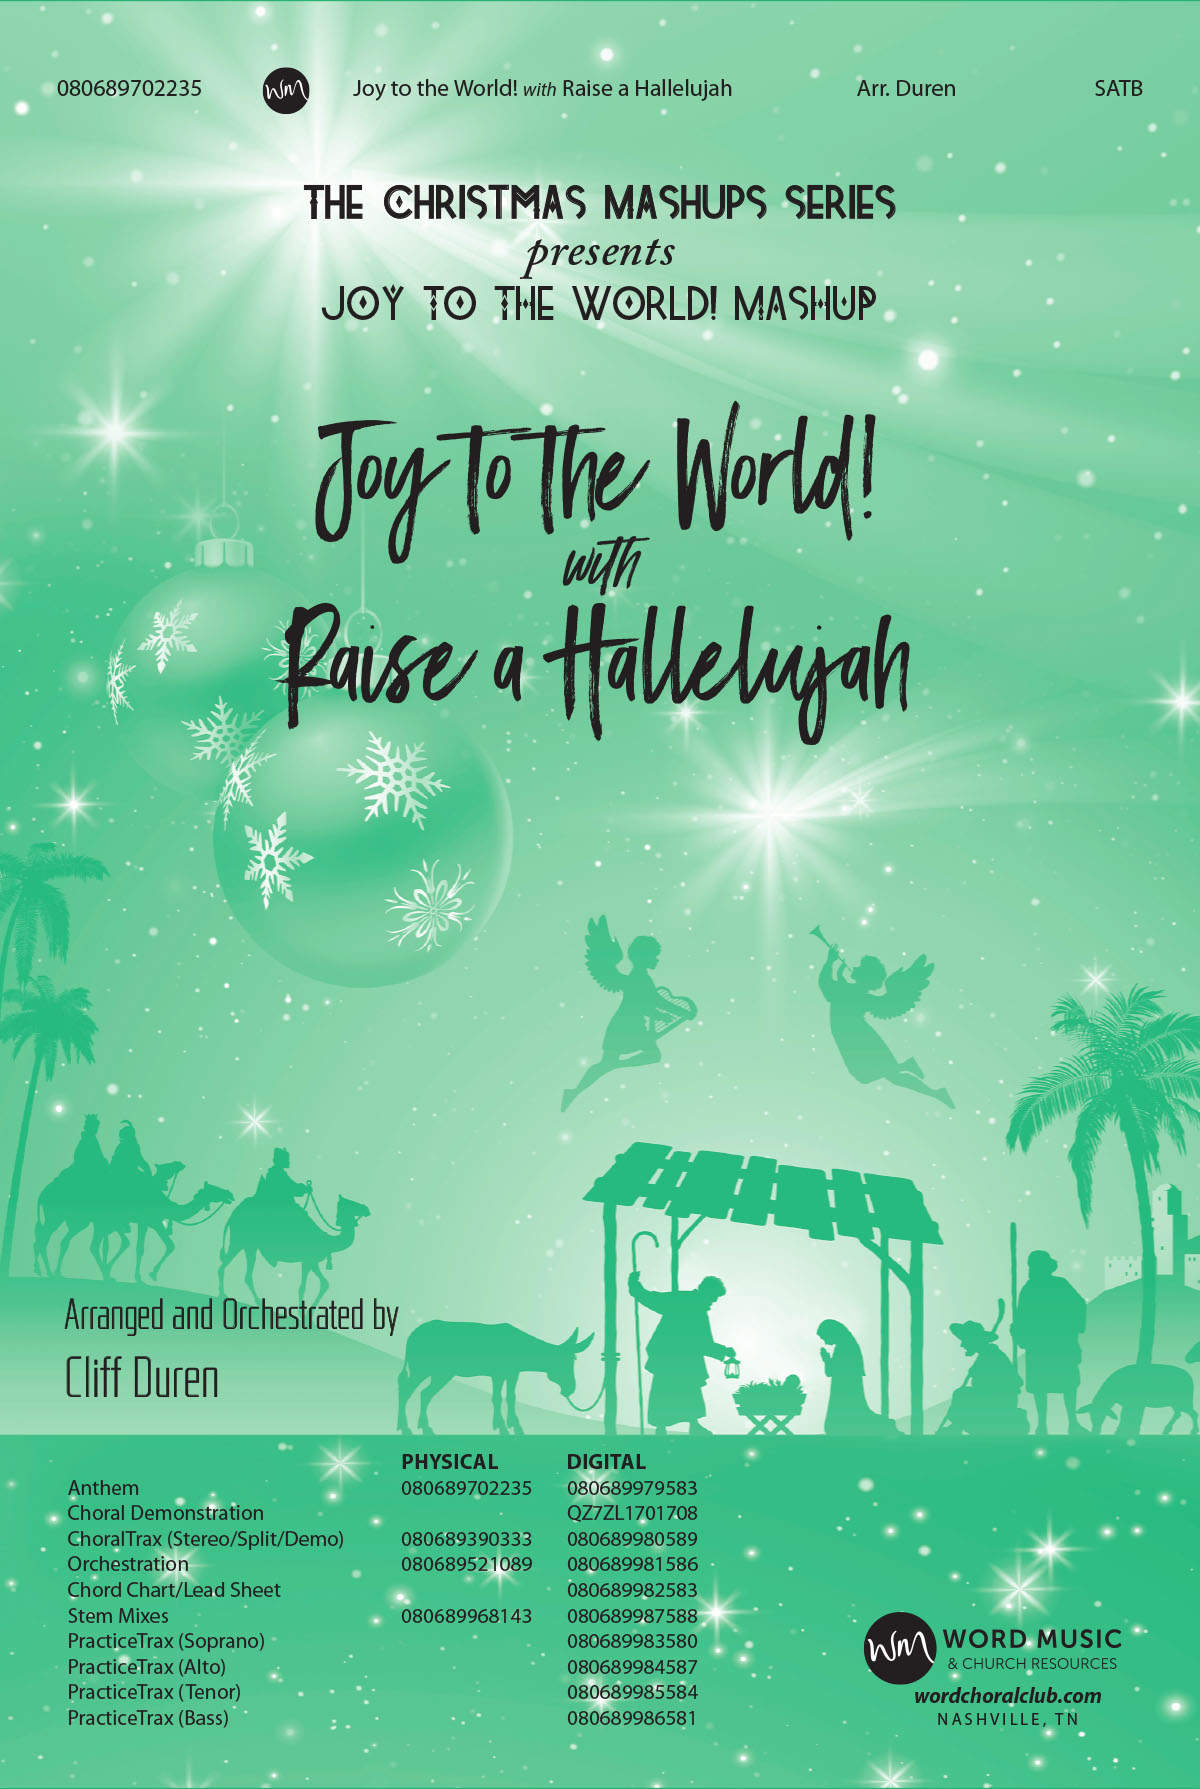 Joy to the World! with Raise a Hallelujah